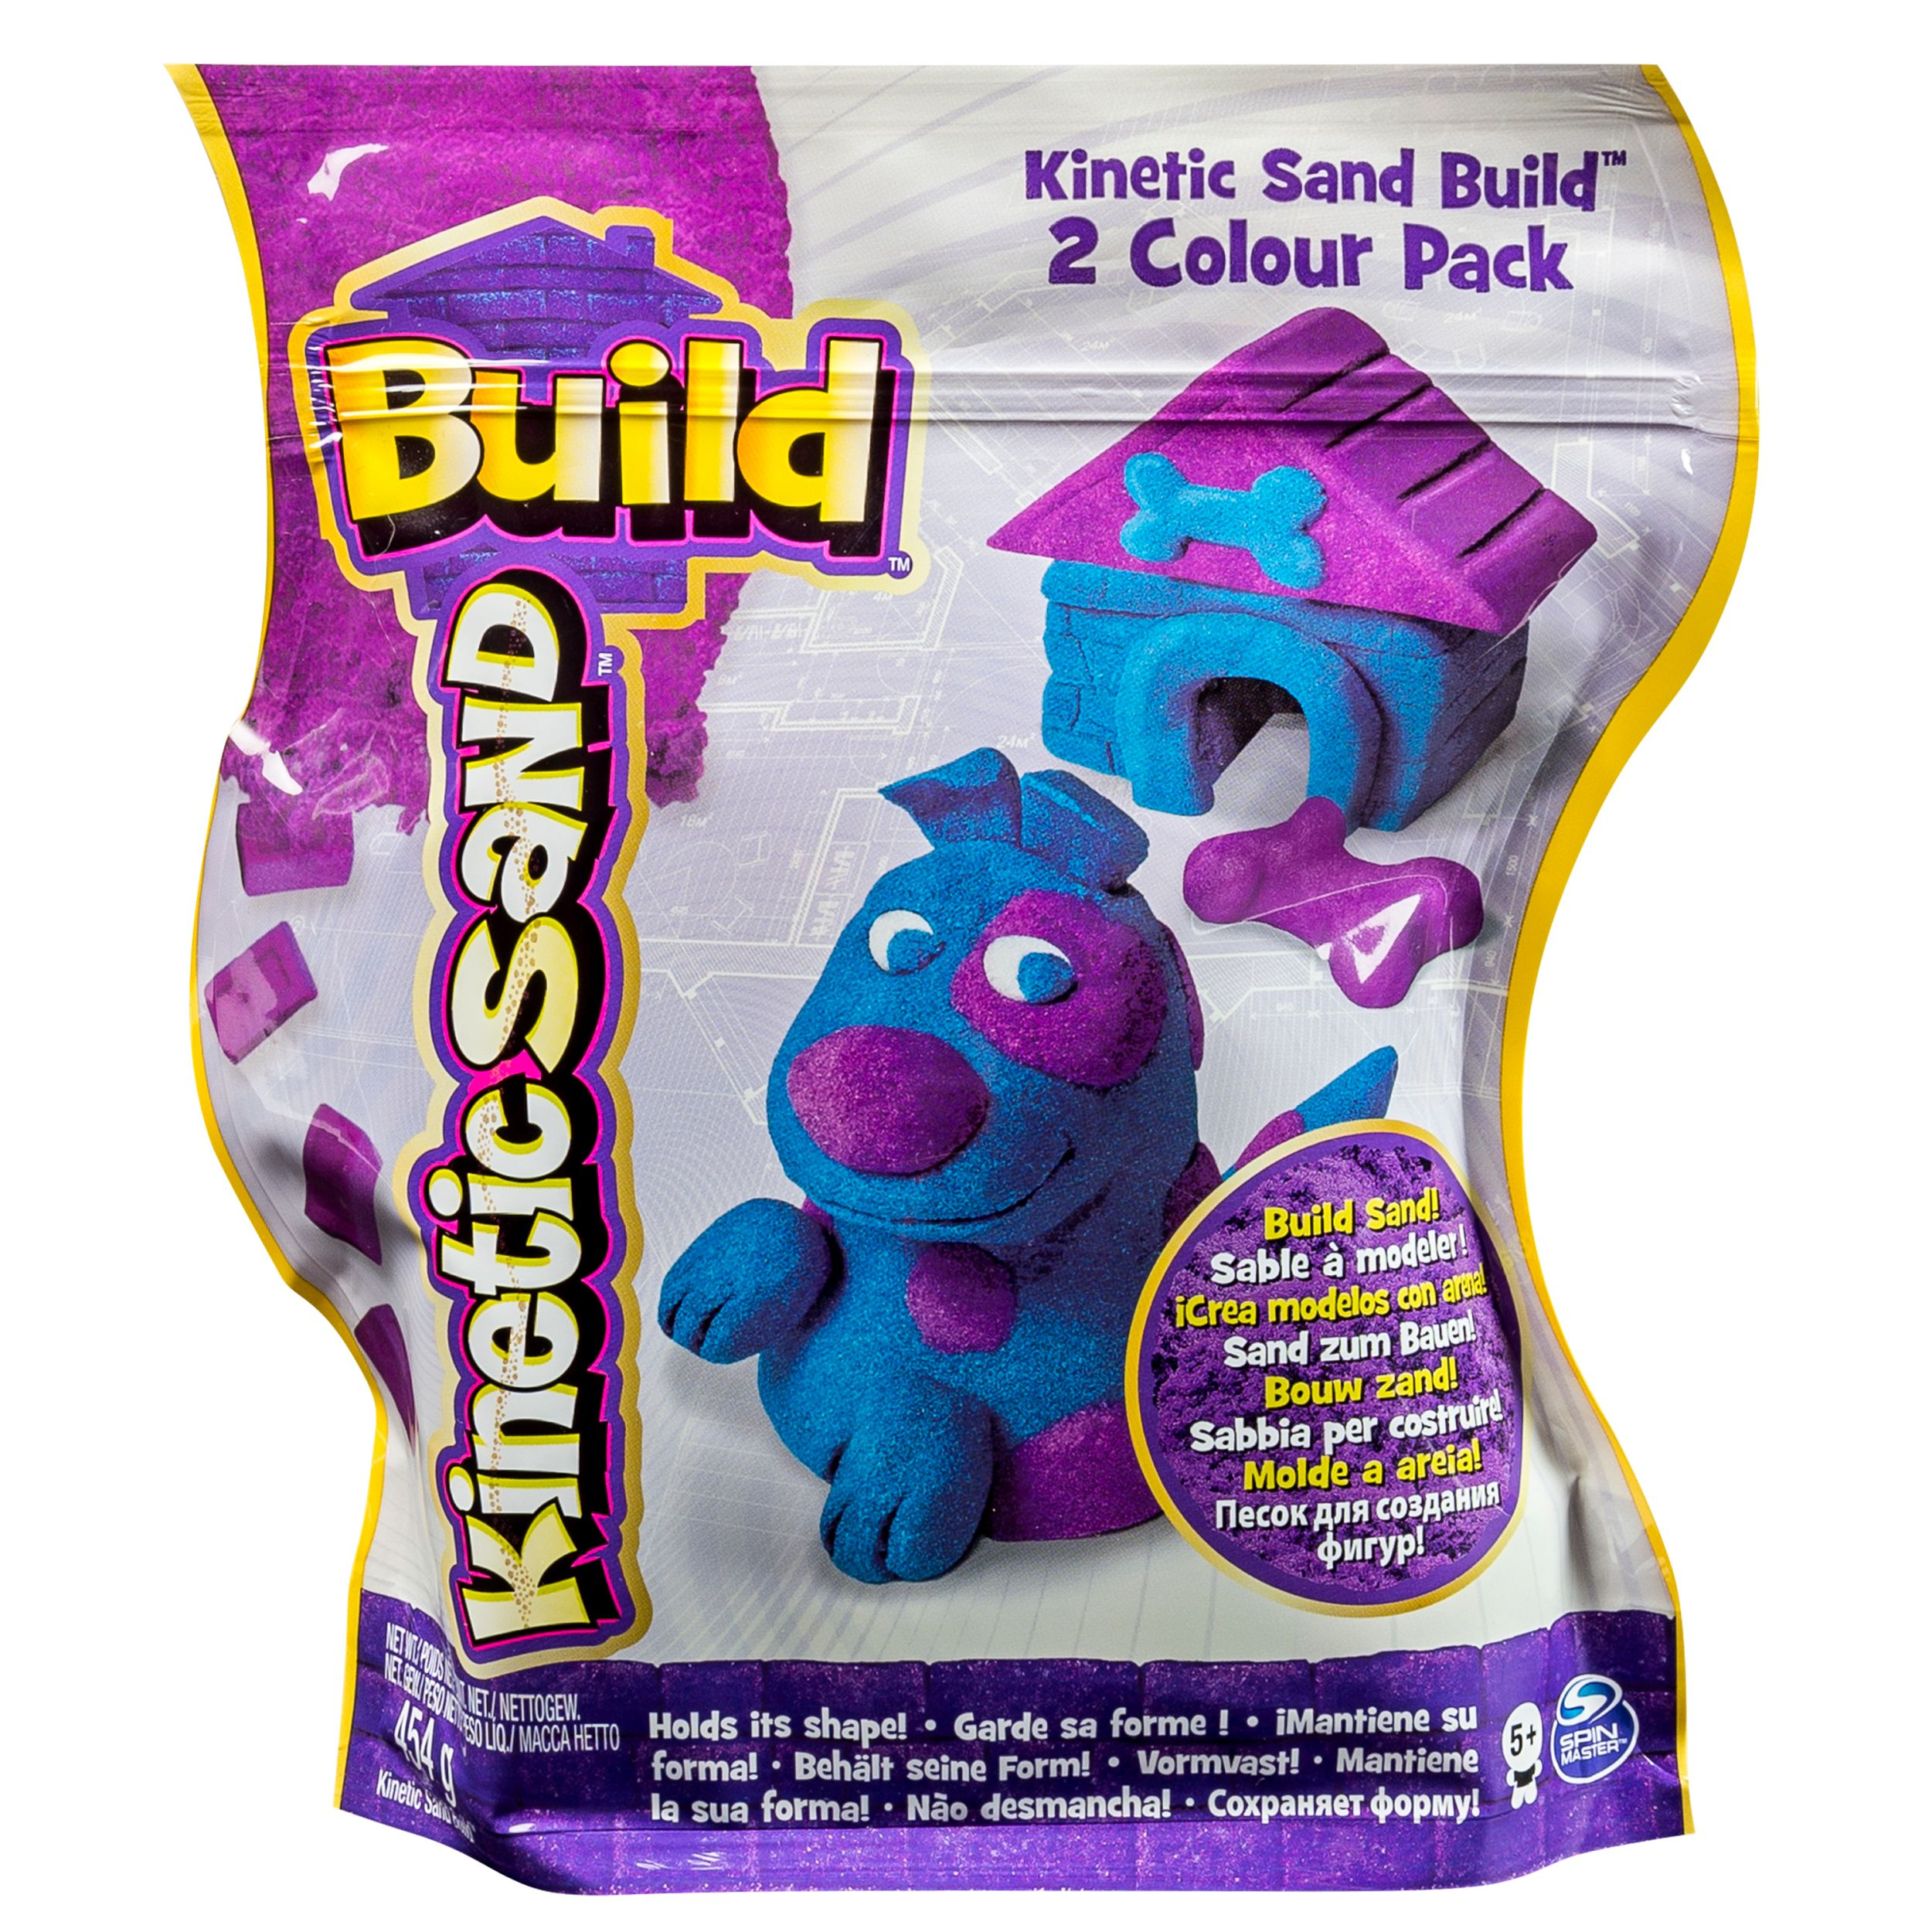 The One and Only Kinetic Sand Build, 1lb Color Pack, Purple and Blue